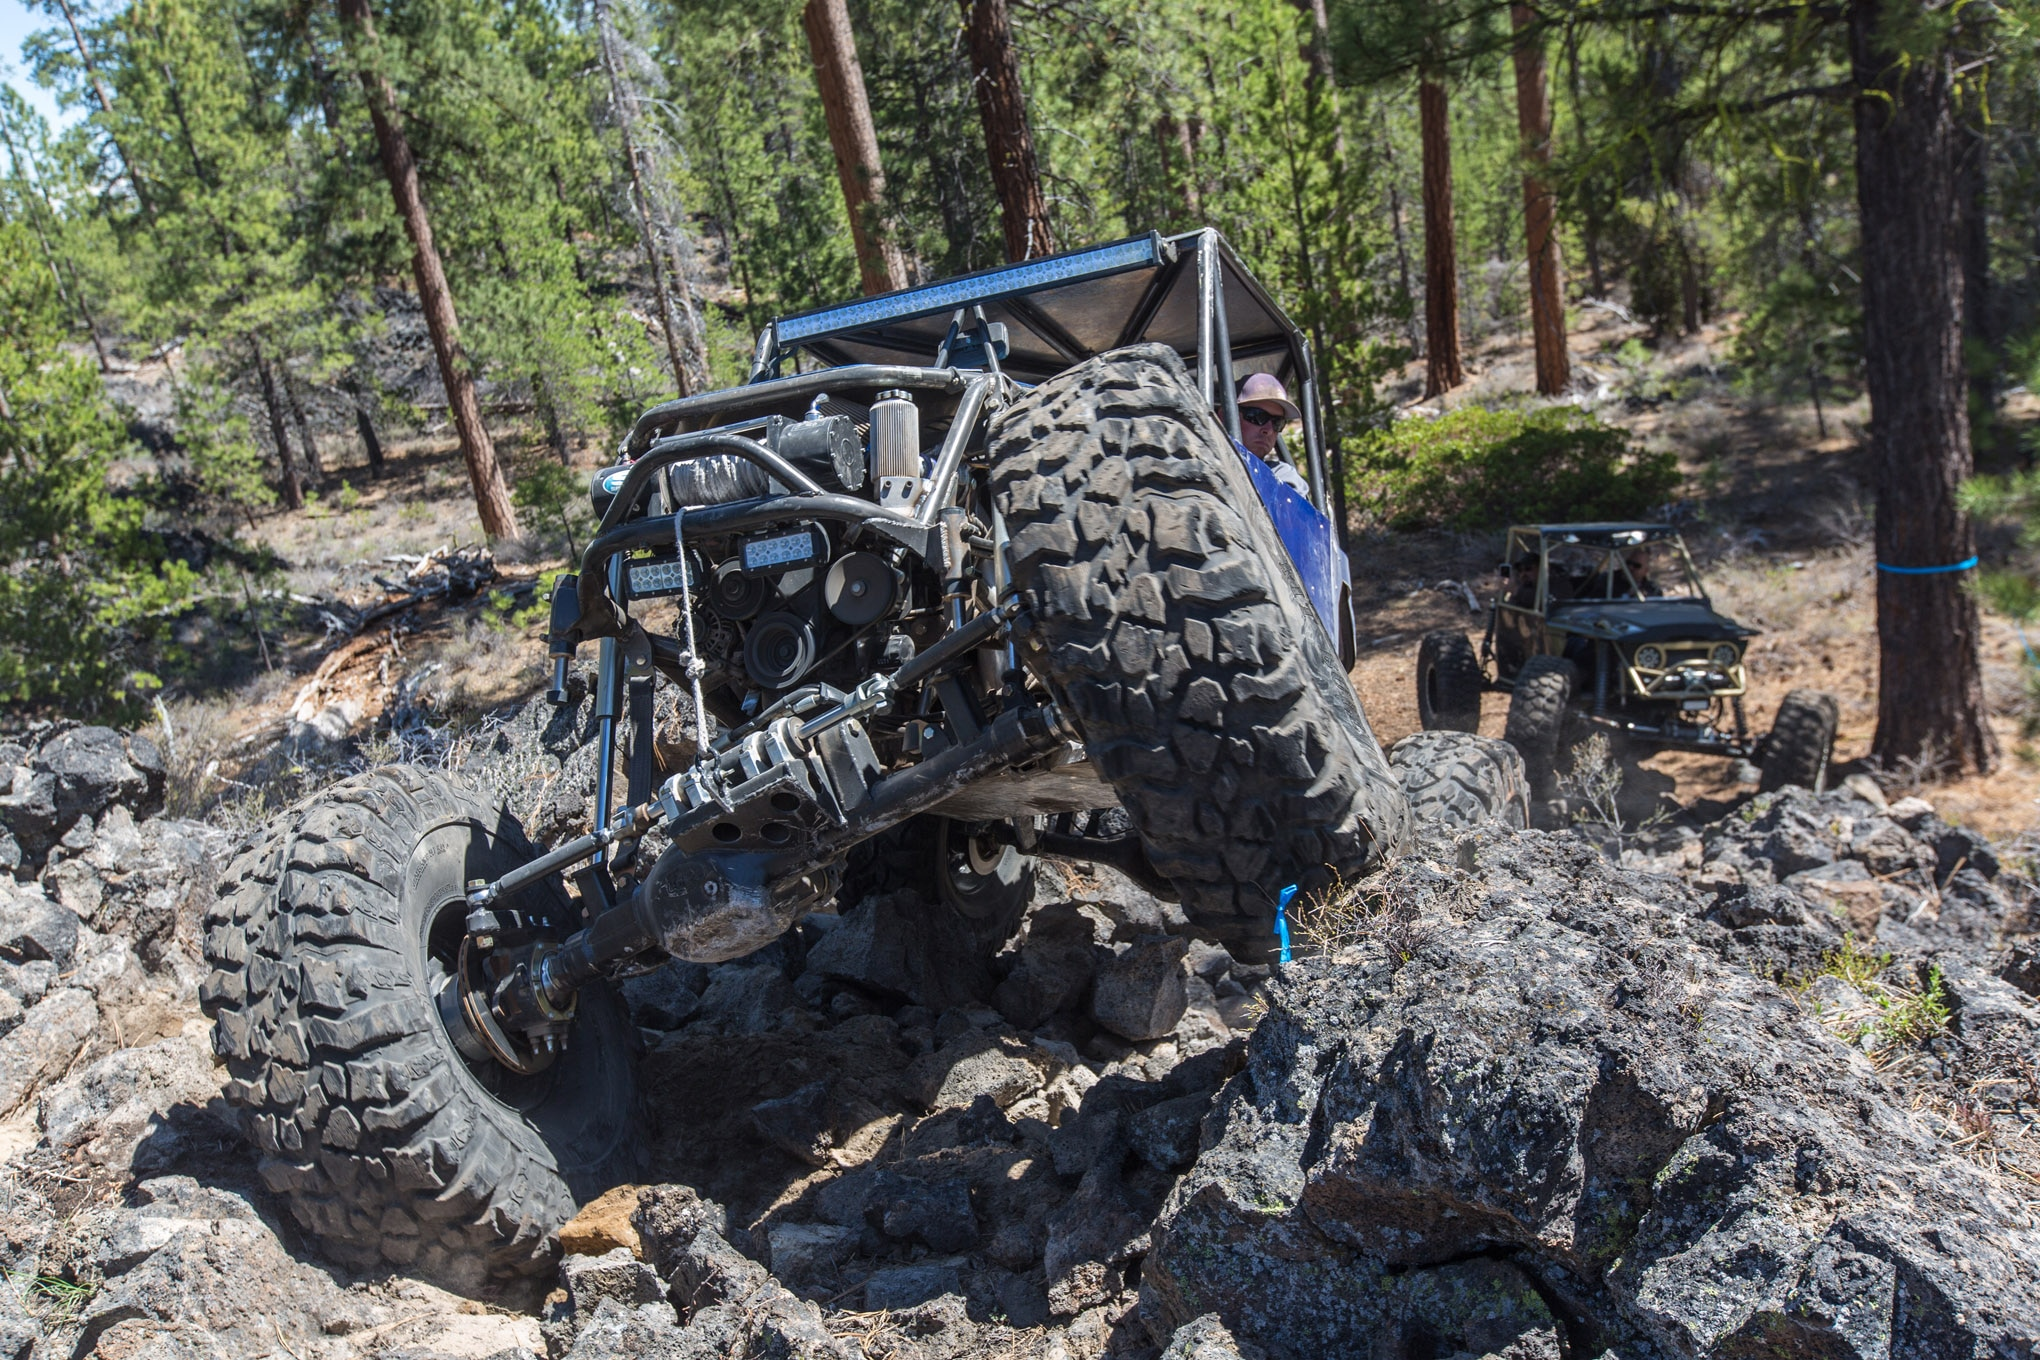 Will Bradford recently upgraded the tires on his buggy to 41.5-inch Pit Bull Rockers. The big meats are definitely testing the limits of the Toyota-based Trail-Gear axles, but the ground clearance is amazing. Bradford's buggy is lightweight and powered by a turbocharged 1.6L engine, which helps keep breakage to a minimum.